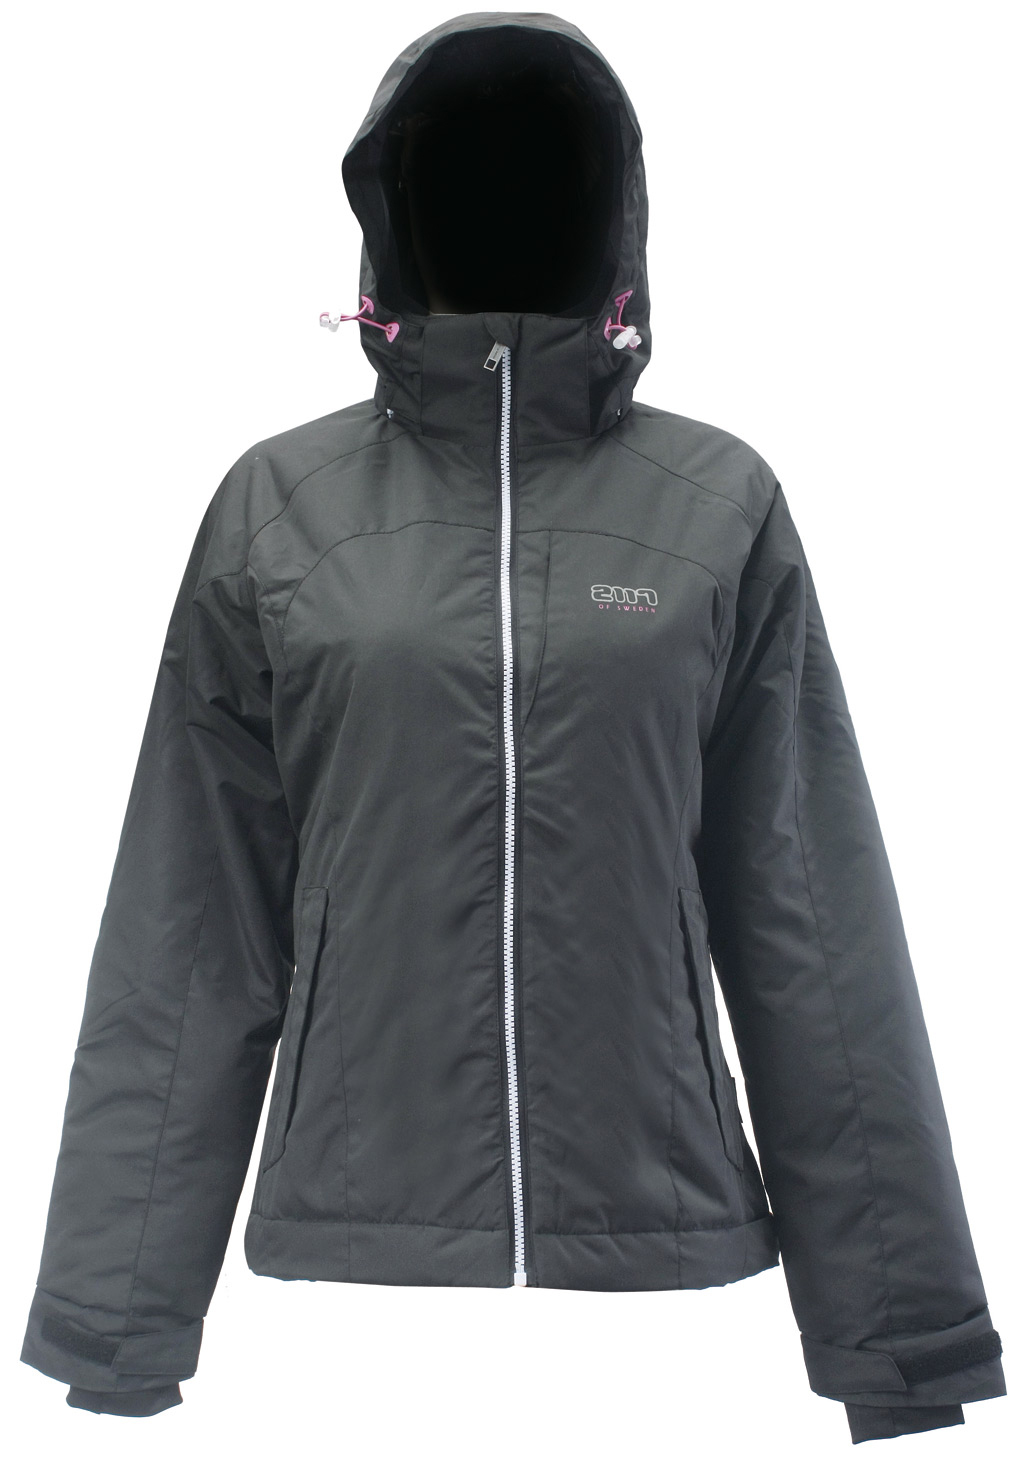 The Lappland Jacket is the perfect everyday street jacket that will also keep you dry and warm with our Shieldtex fabrics for weatherproofing. This jacket has a nice clean look with all the basic amenities you need, two side pockets, chest pocket, inner media pocket, removable hood and elastic comfort cuffs. You will feel comfortable walking down the main streets of your home town or downtown Vail; either way you will be hip with style.Key Features of the 2117 Lappland Jacket: 8,000mm Waterproof 3,000g Breathability Nice, clean street jacket Two side pockets One chest pockets Ipod pocket inside jacket Drawstring in waist and hood Removable hood Elastic cuff in sleeve end - $47.95